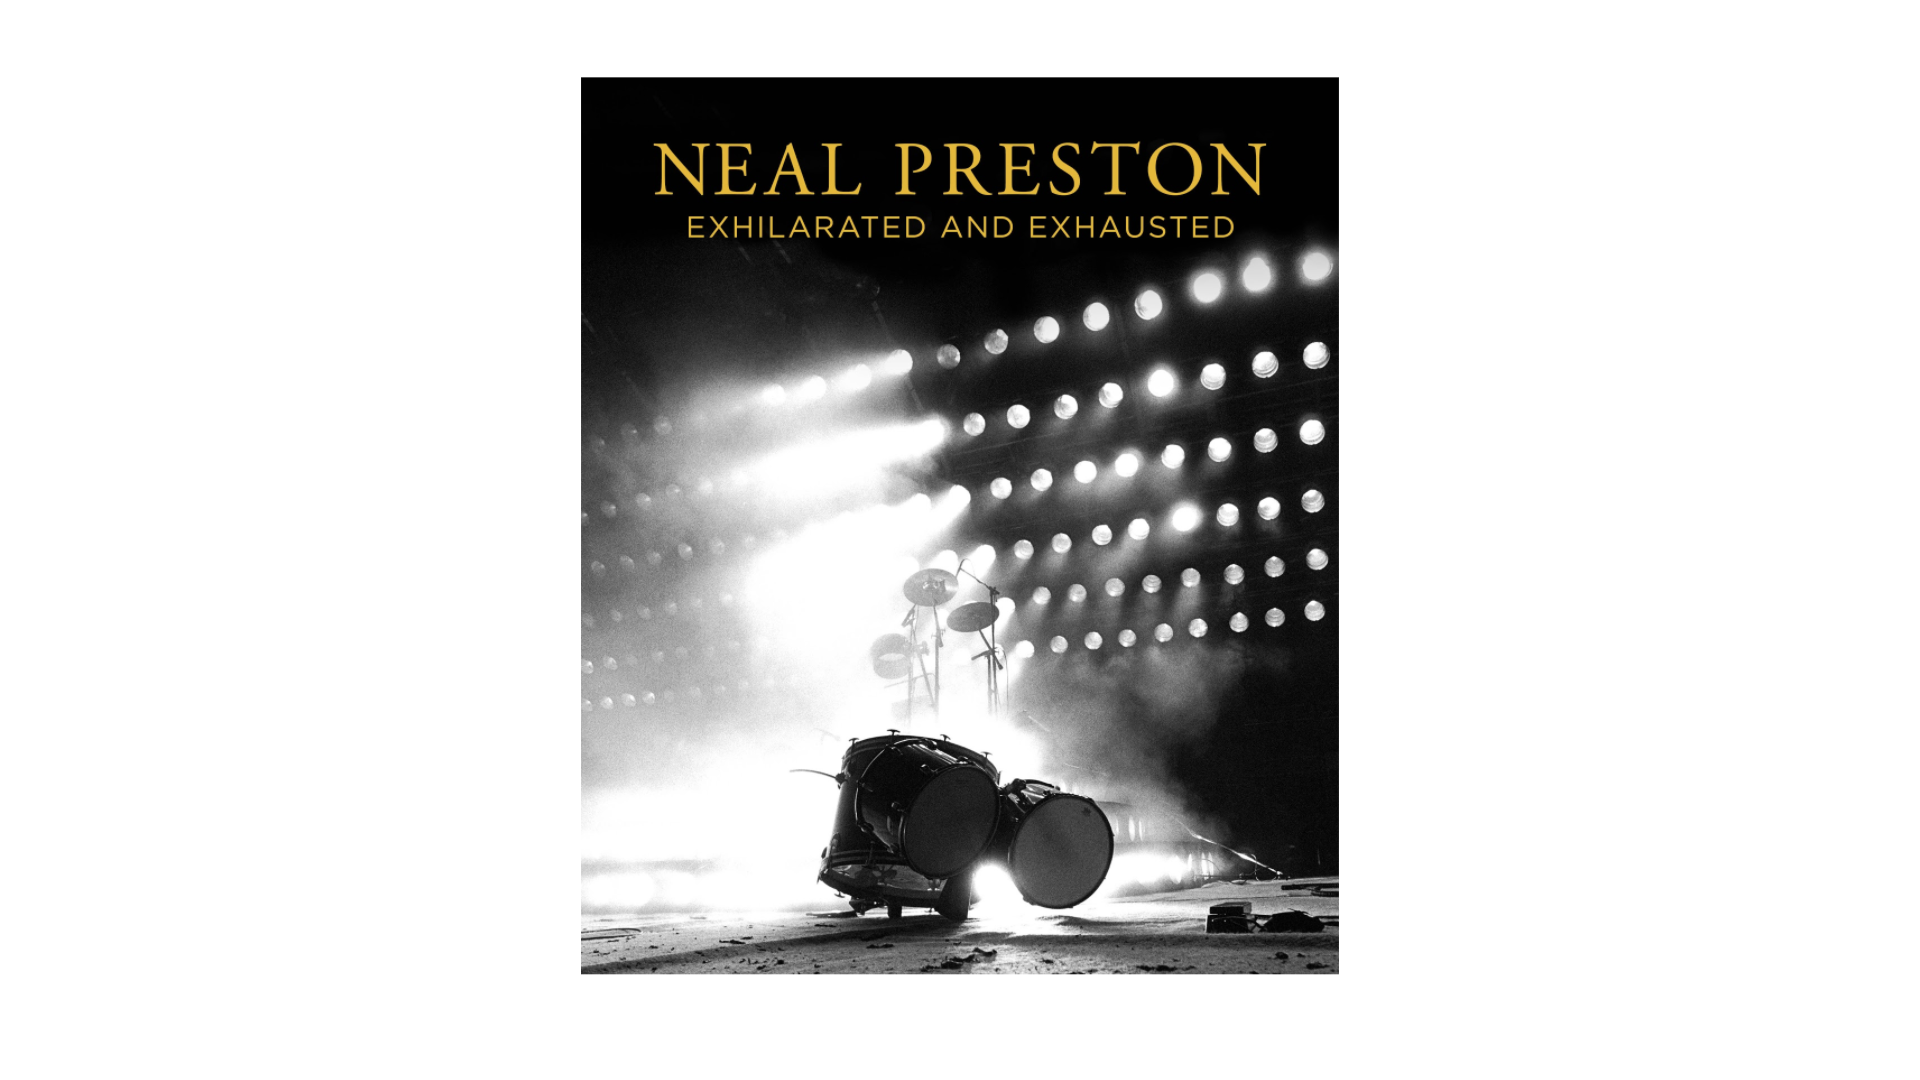 """Neal Preston: Exhilarated and Exhausted"""